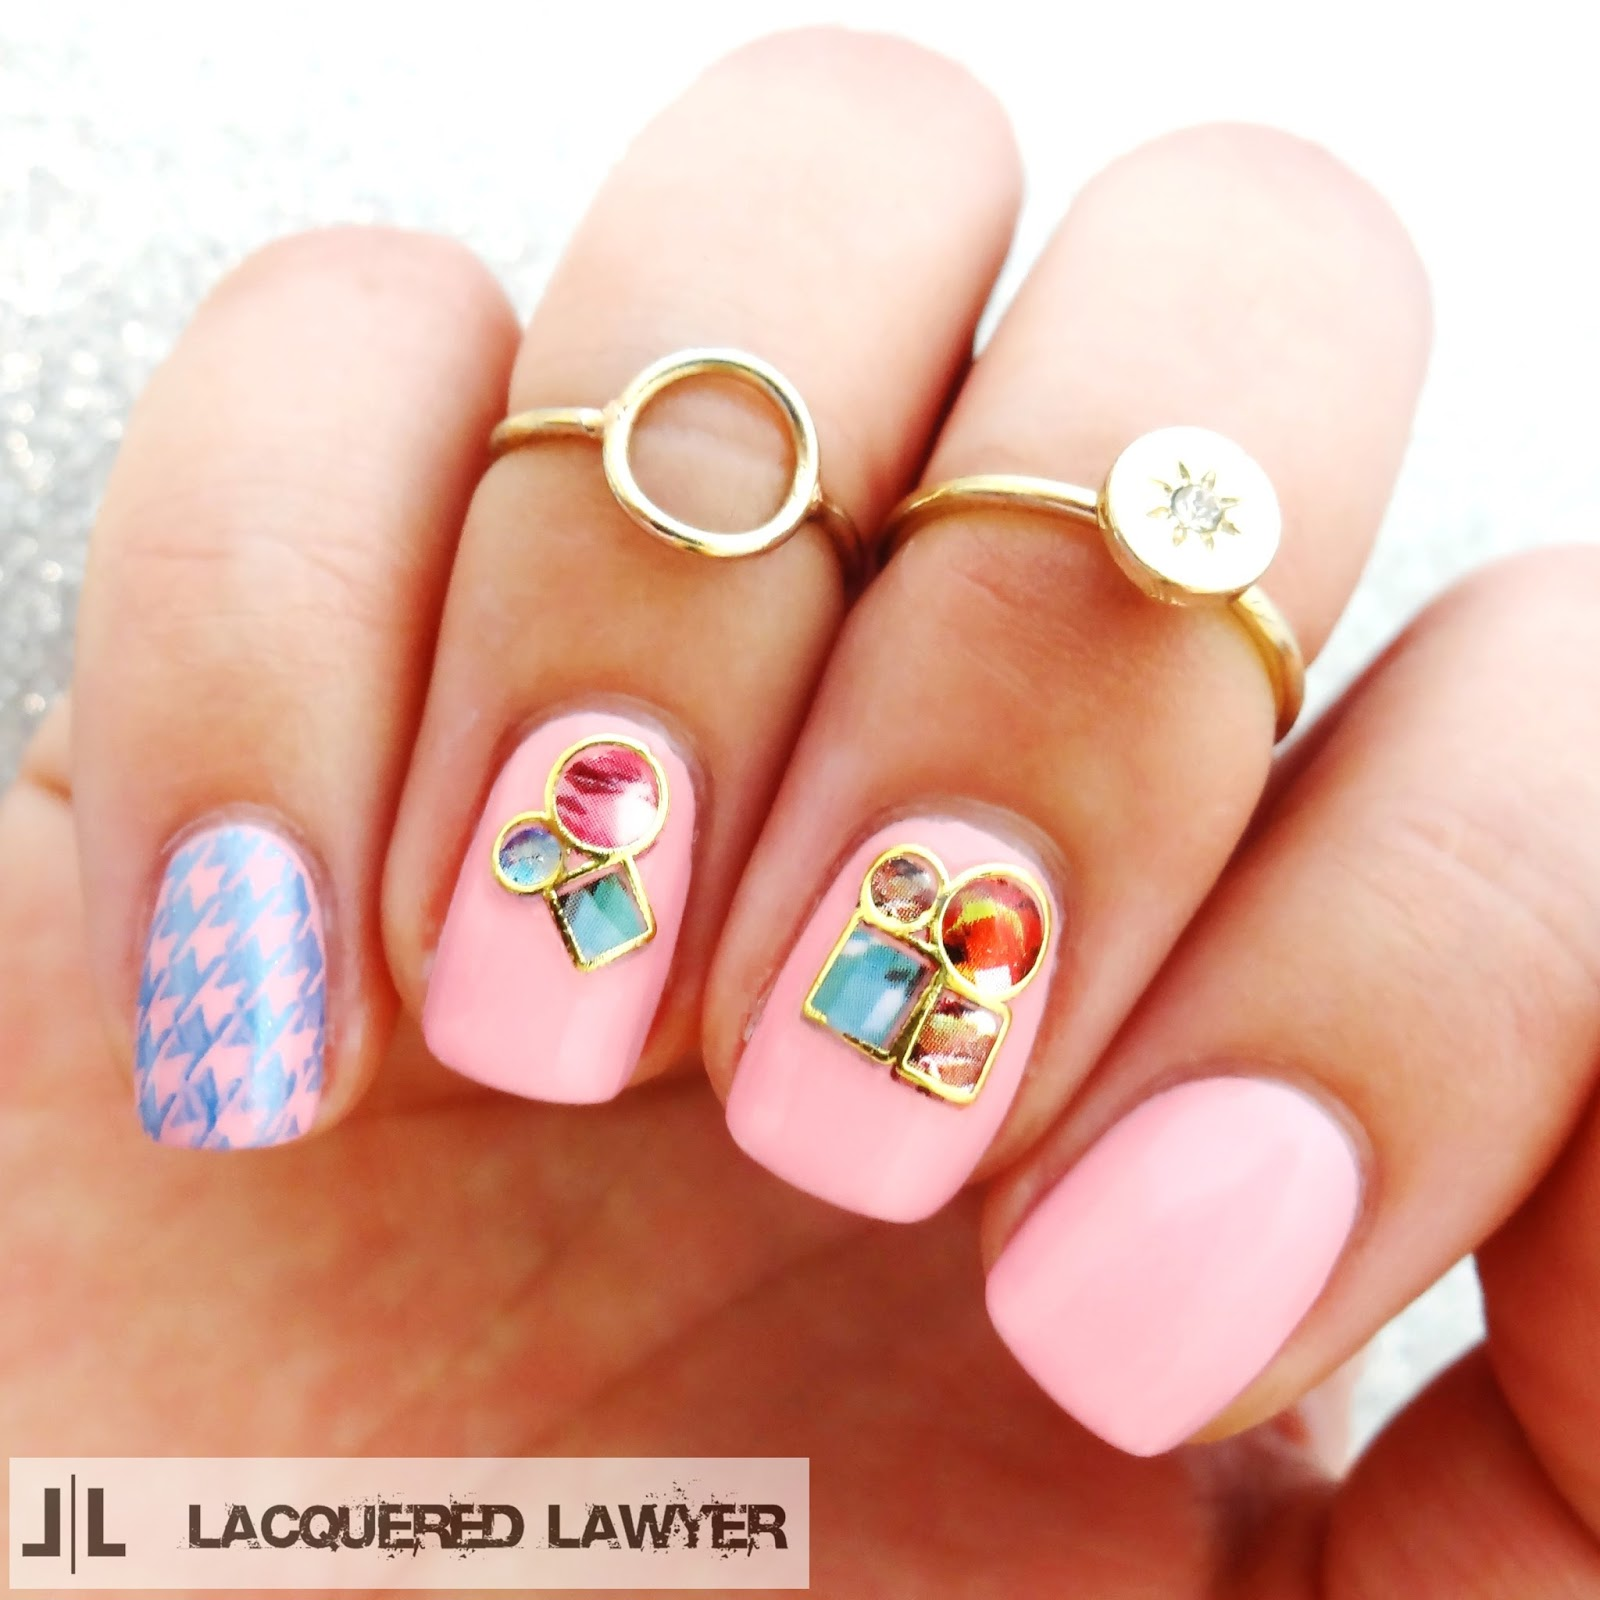 Lacquered Lawyer | Nail Art Blog: Sticker Stones